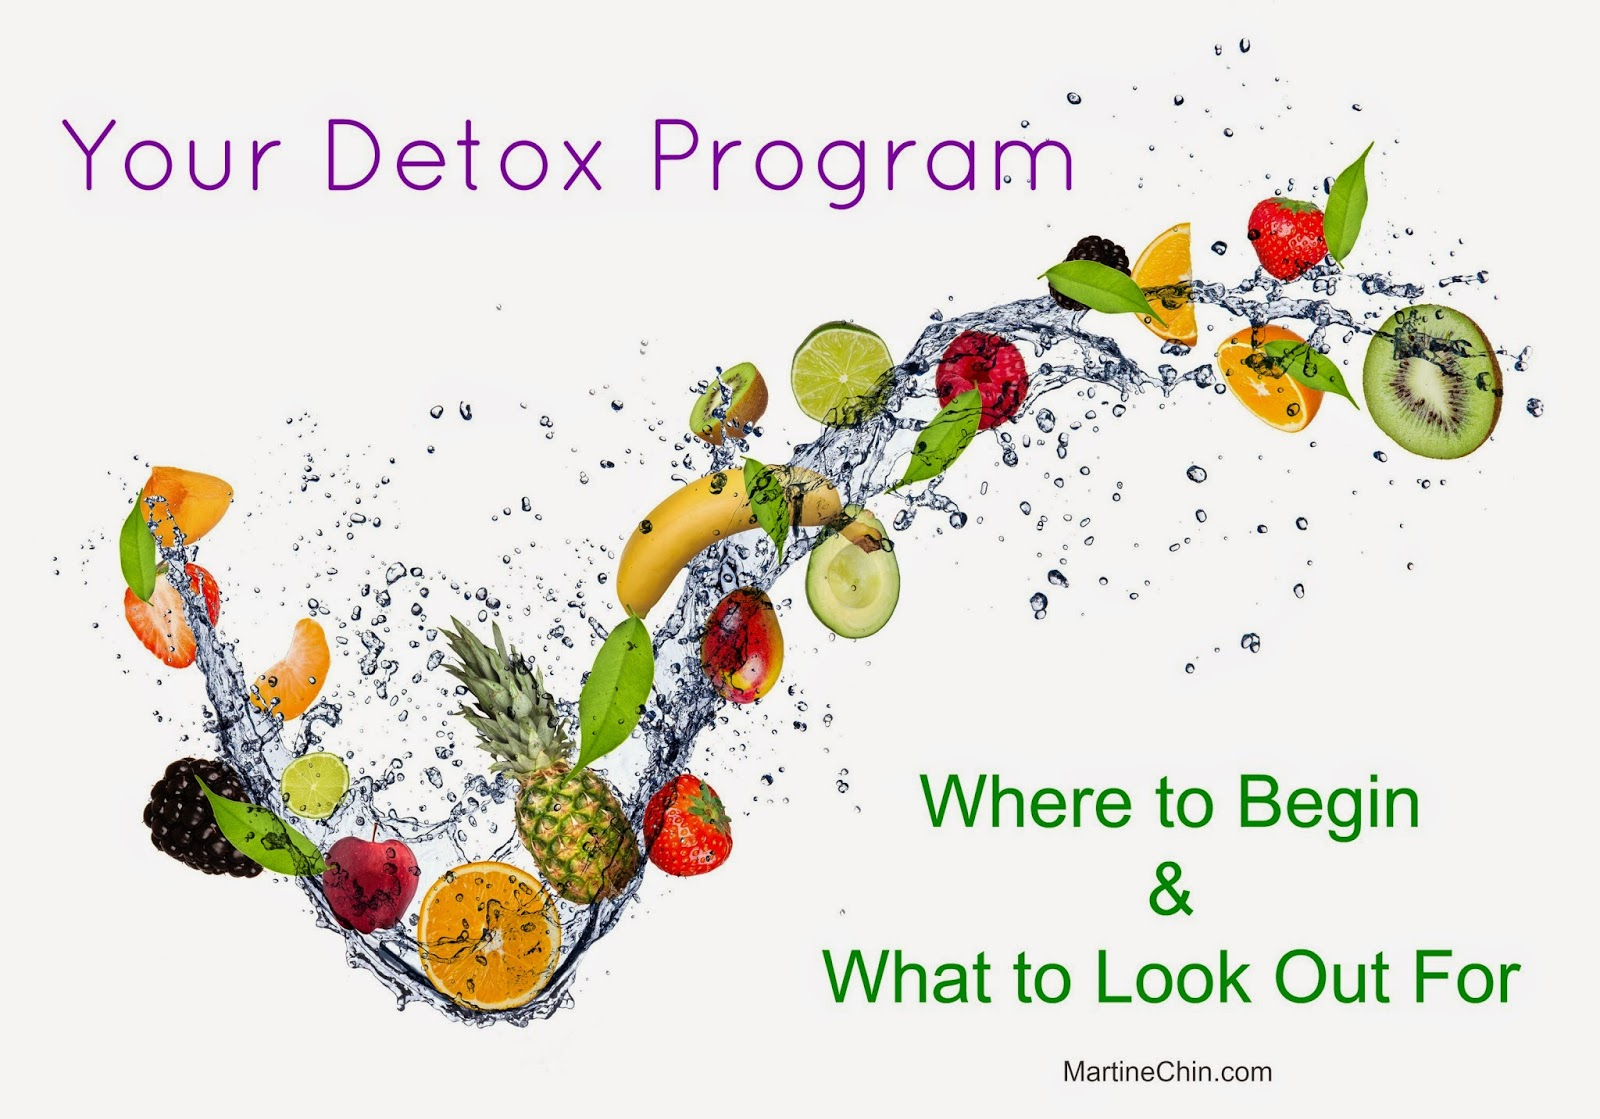 10 Signs That You Need To Detox Your Body